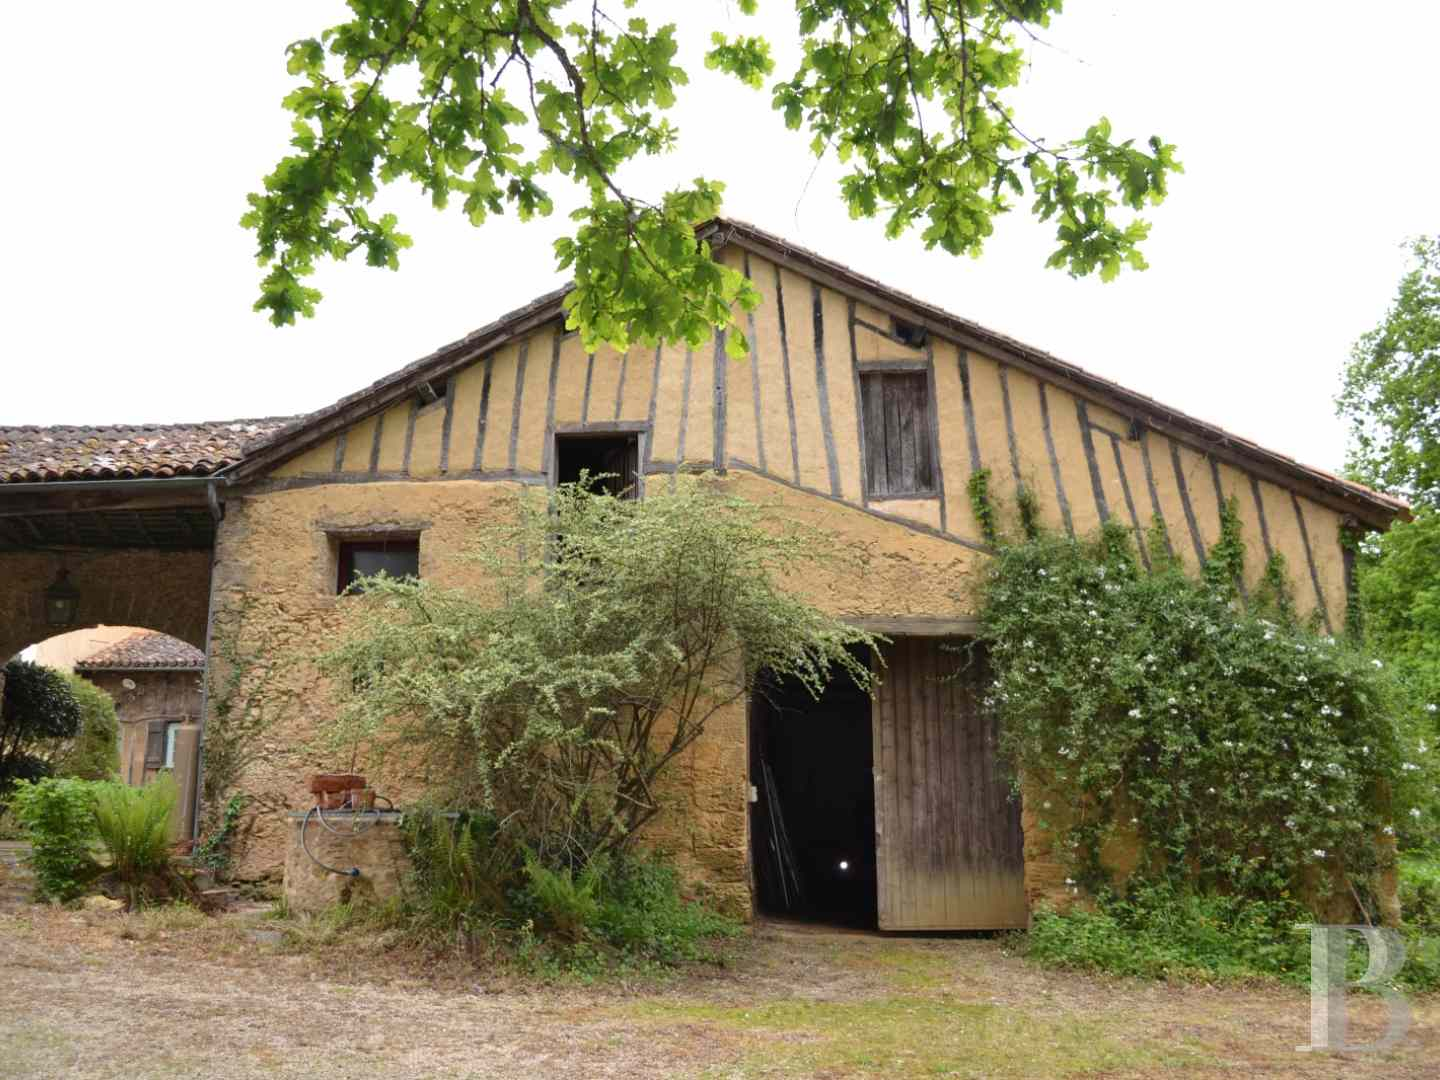 character properties France midi pyrenees character houses - 14 zoom